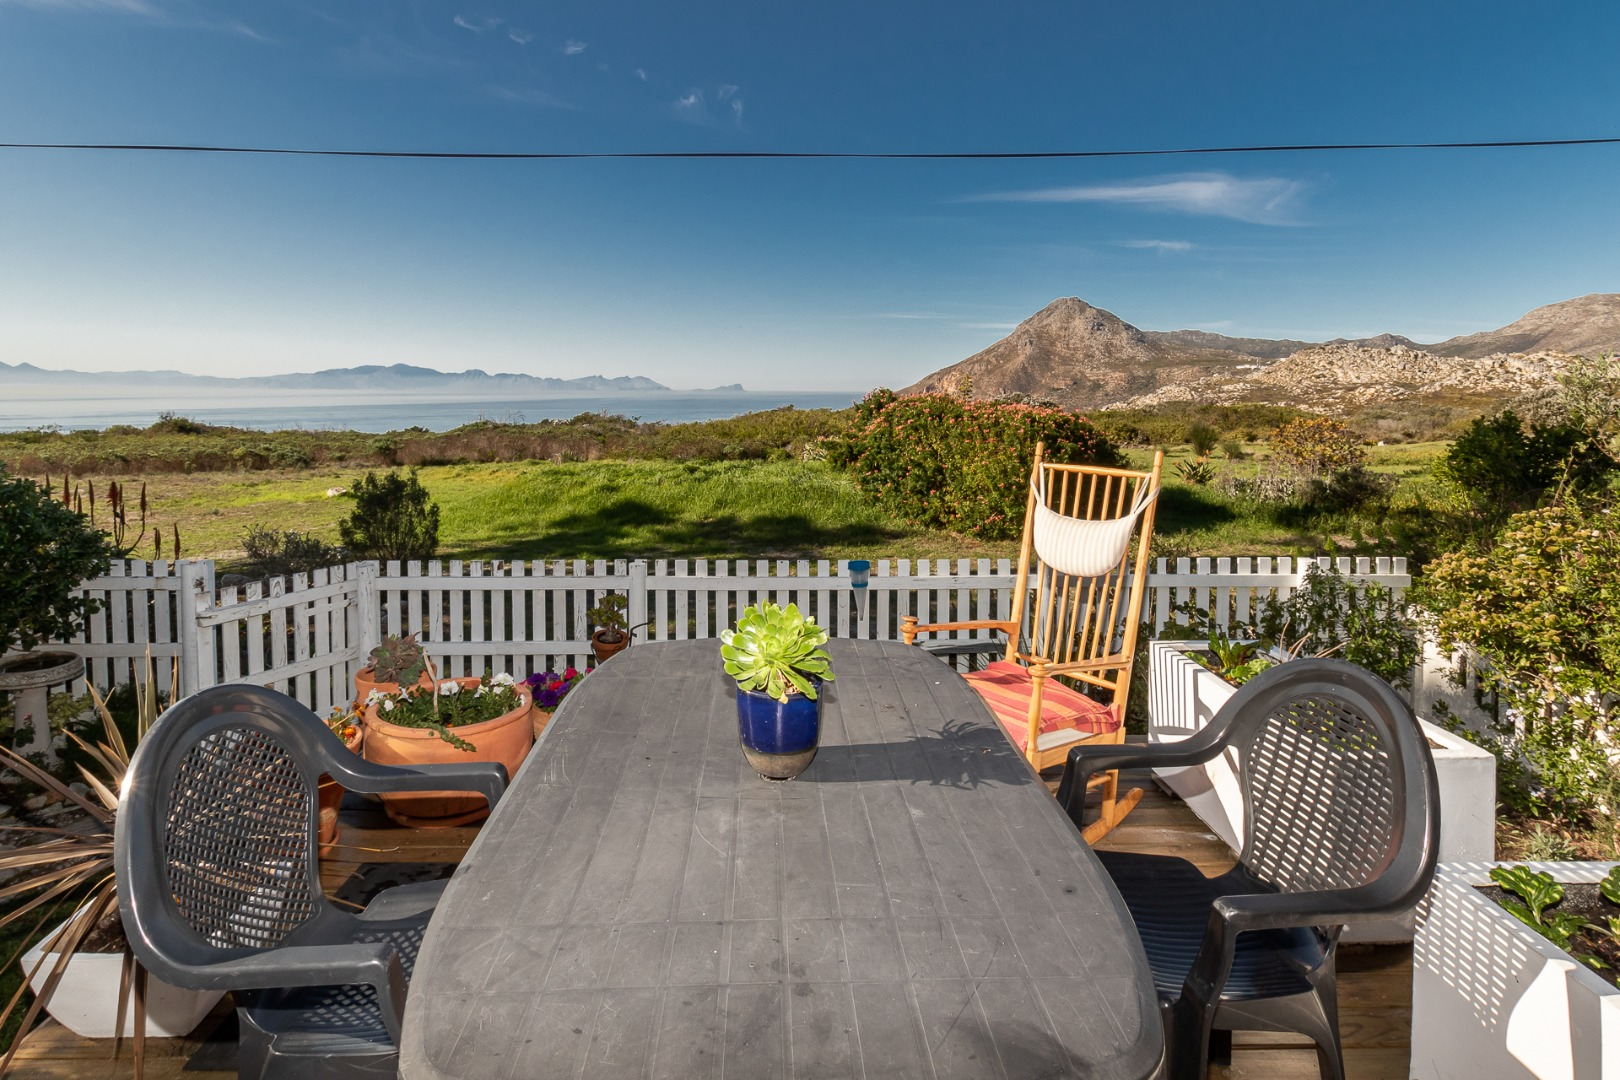 2 Bedroom House For Sale in Simons Town Rural